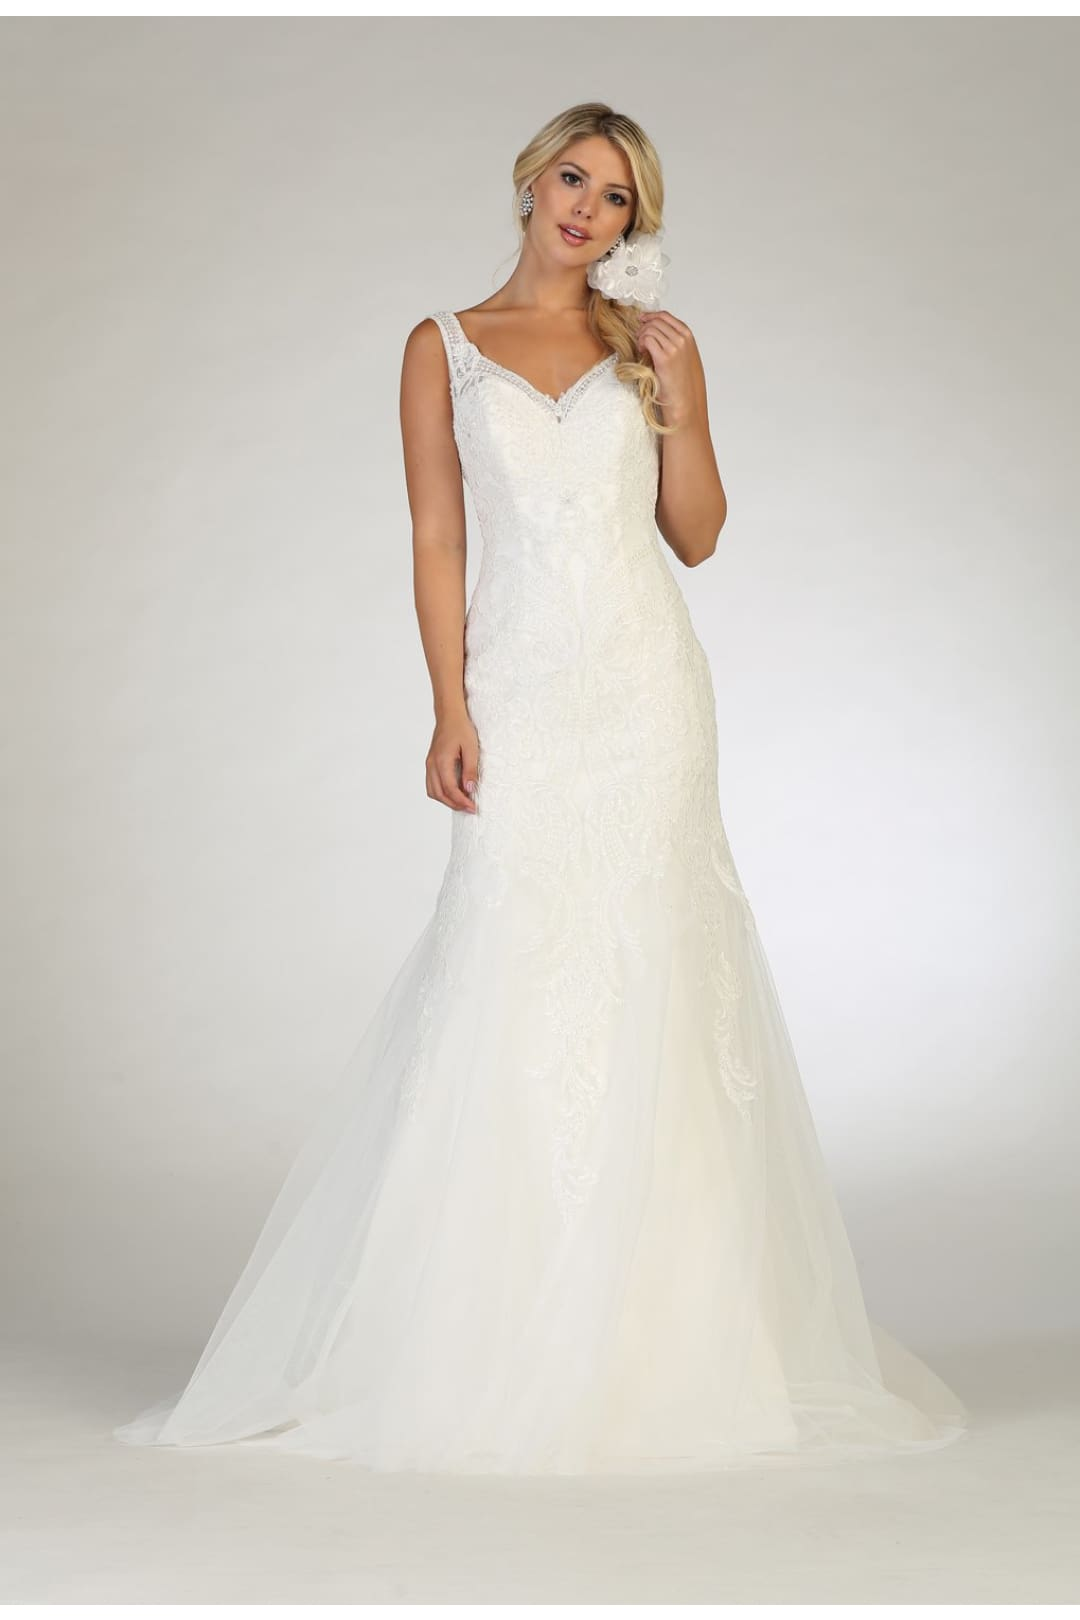 Sleeveless Wedding Dress - 4 / Ivory